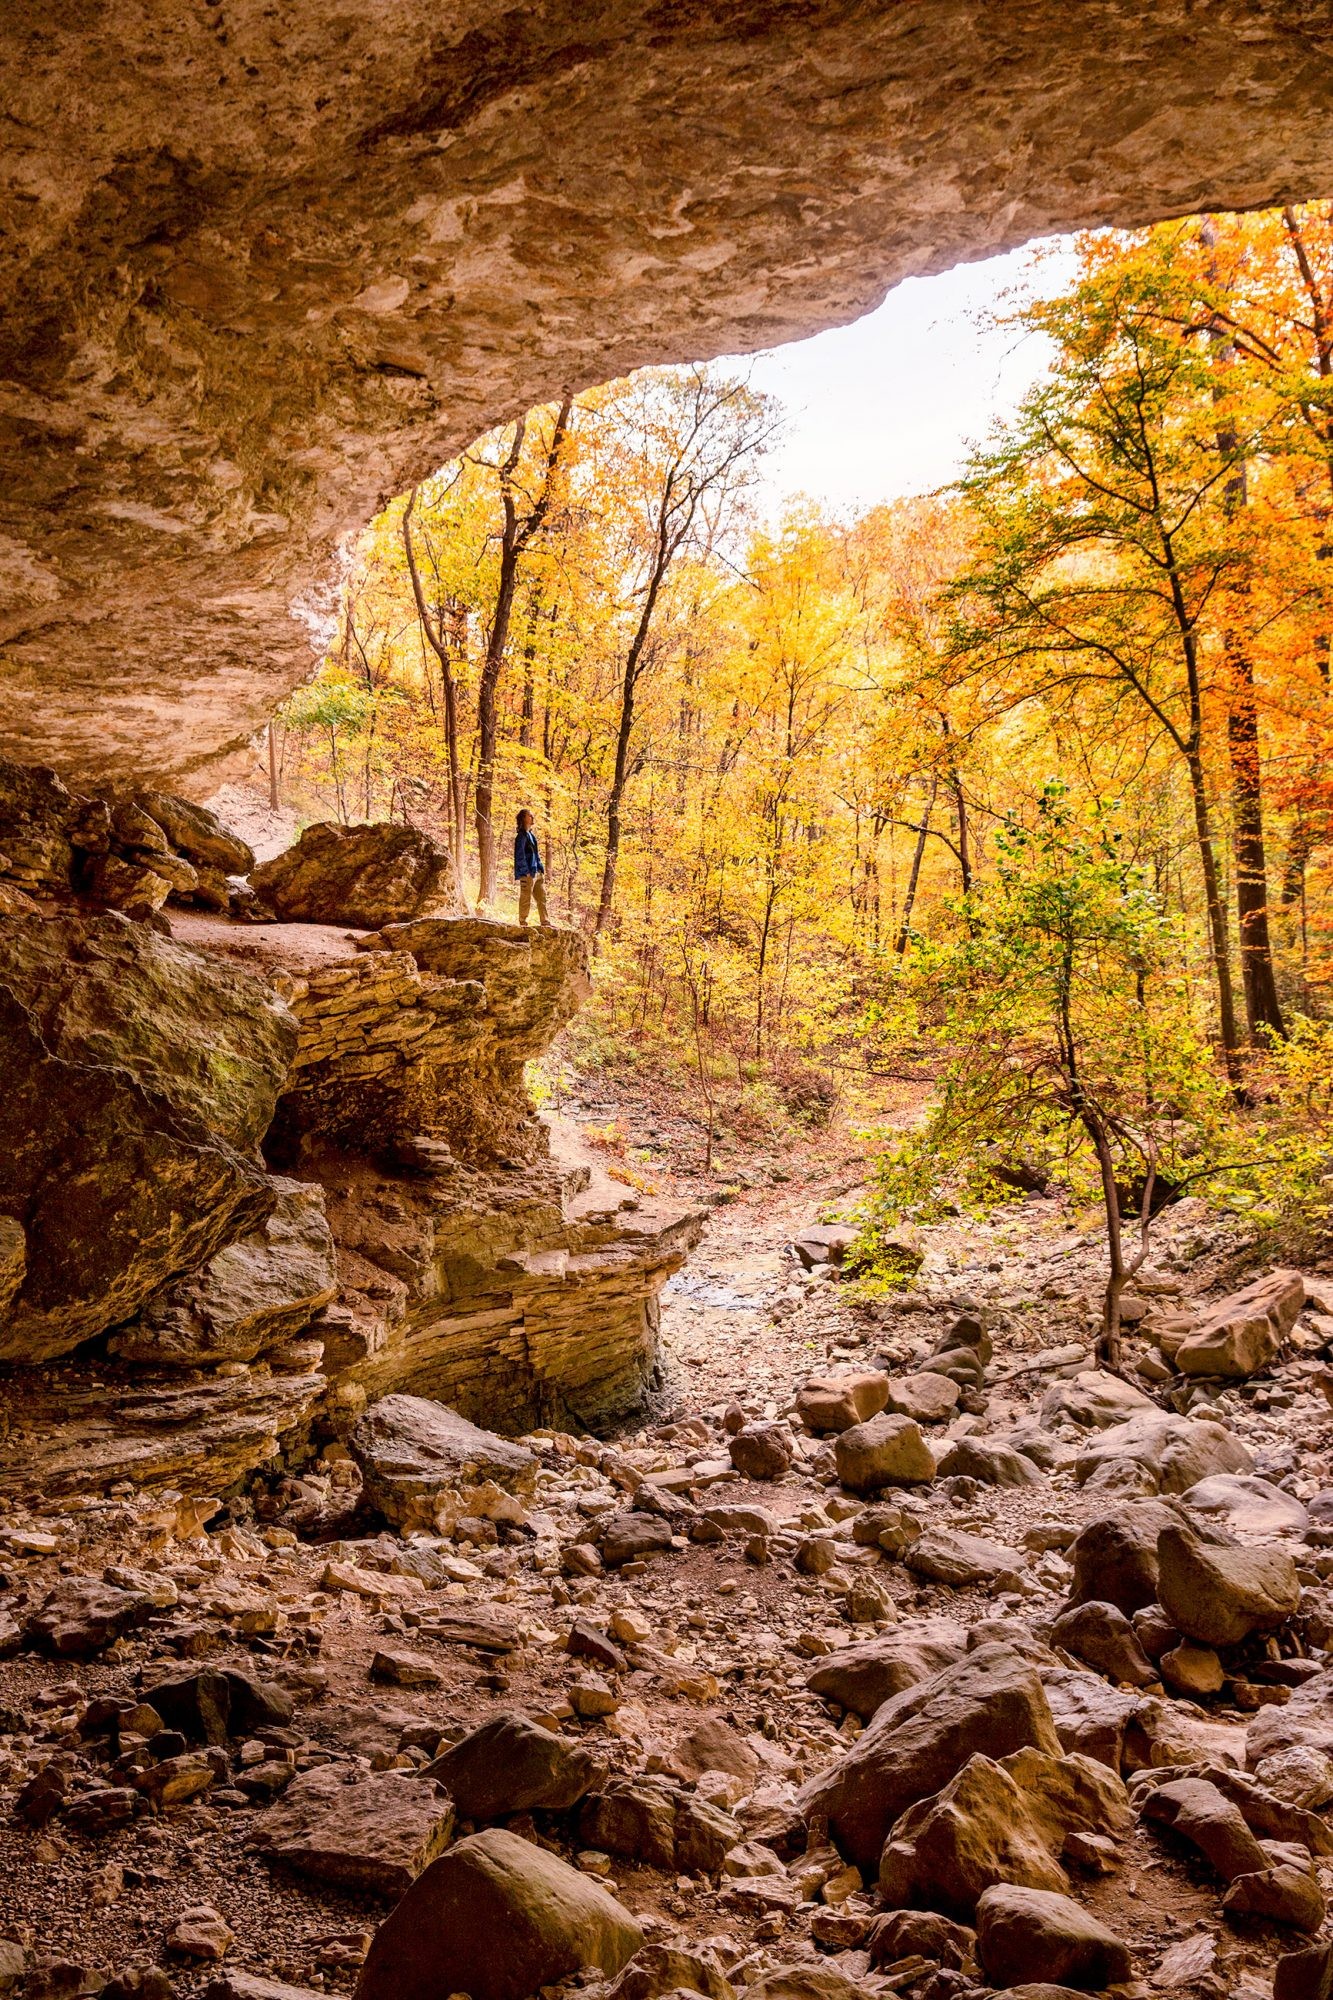 Cob Cave on Lost Valley Trail, Buffalo National River